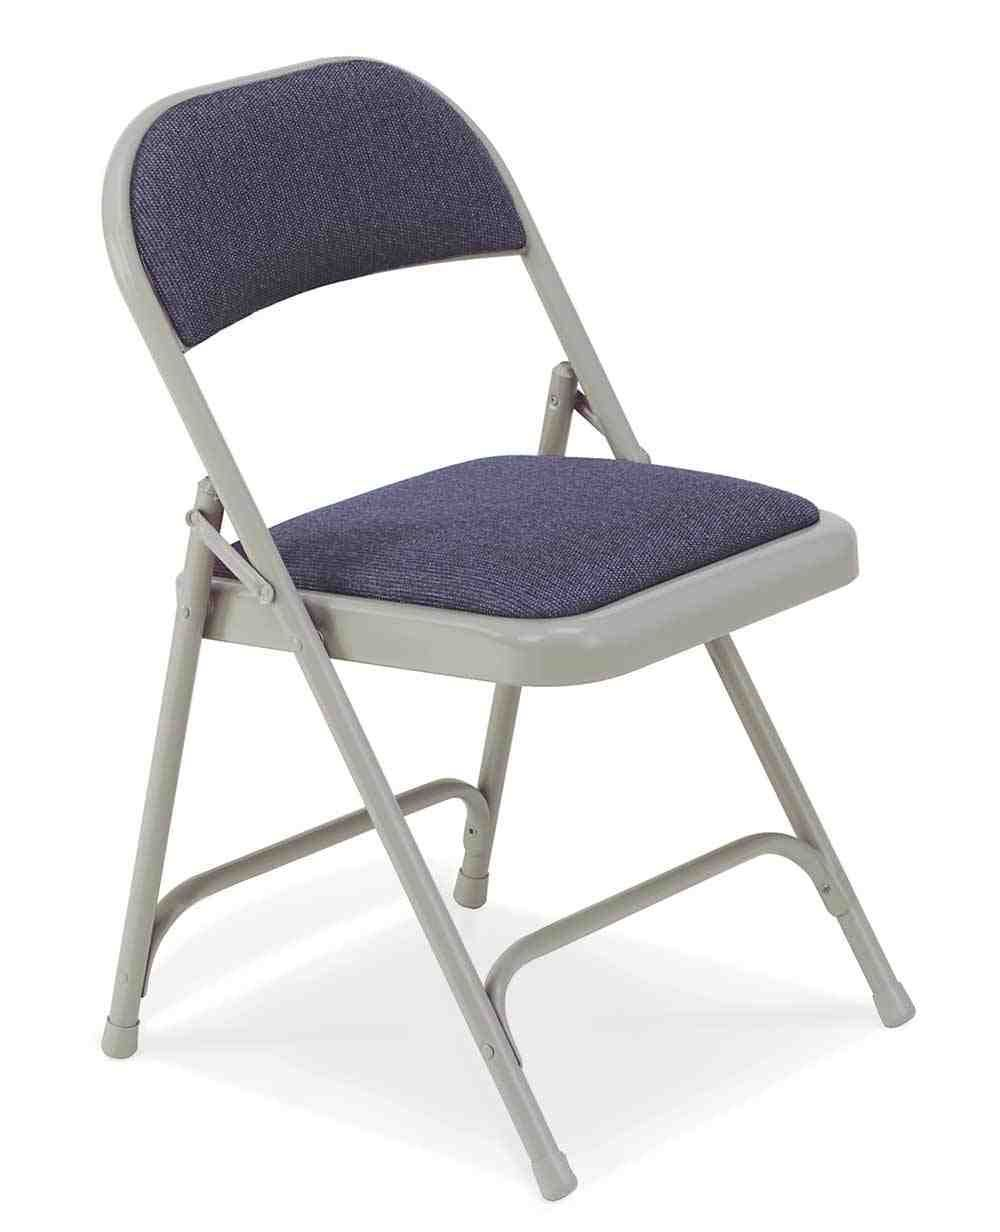 Collapsible chairs - Folding Chairs